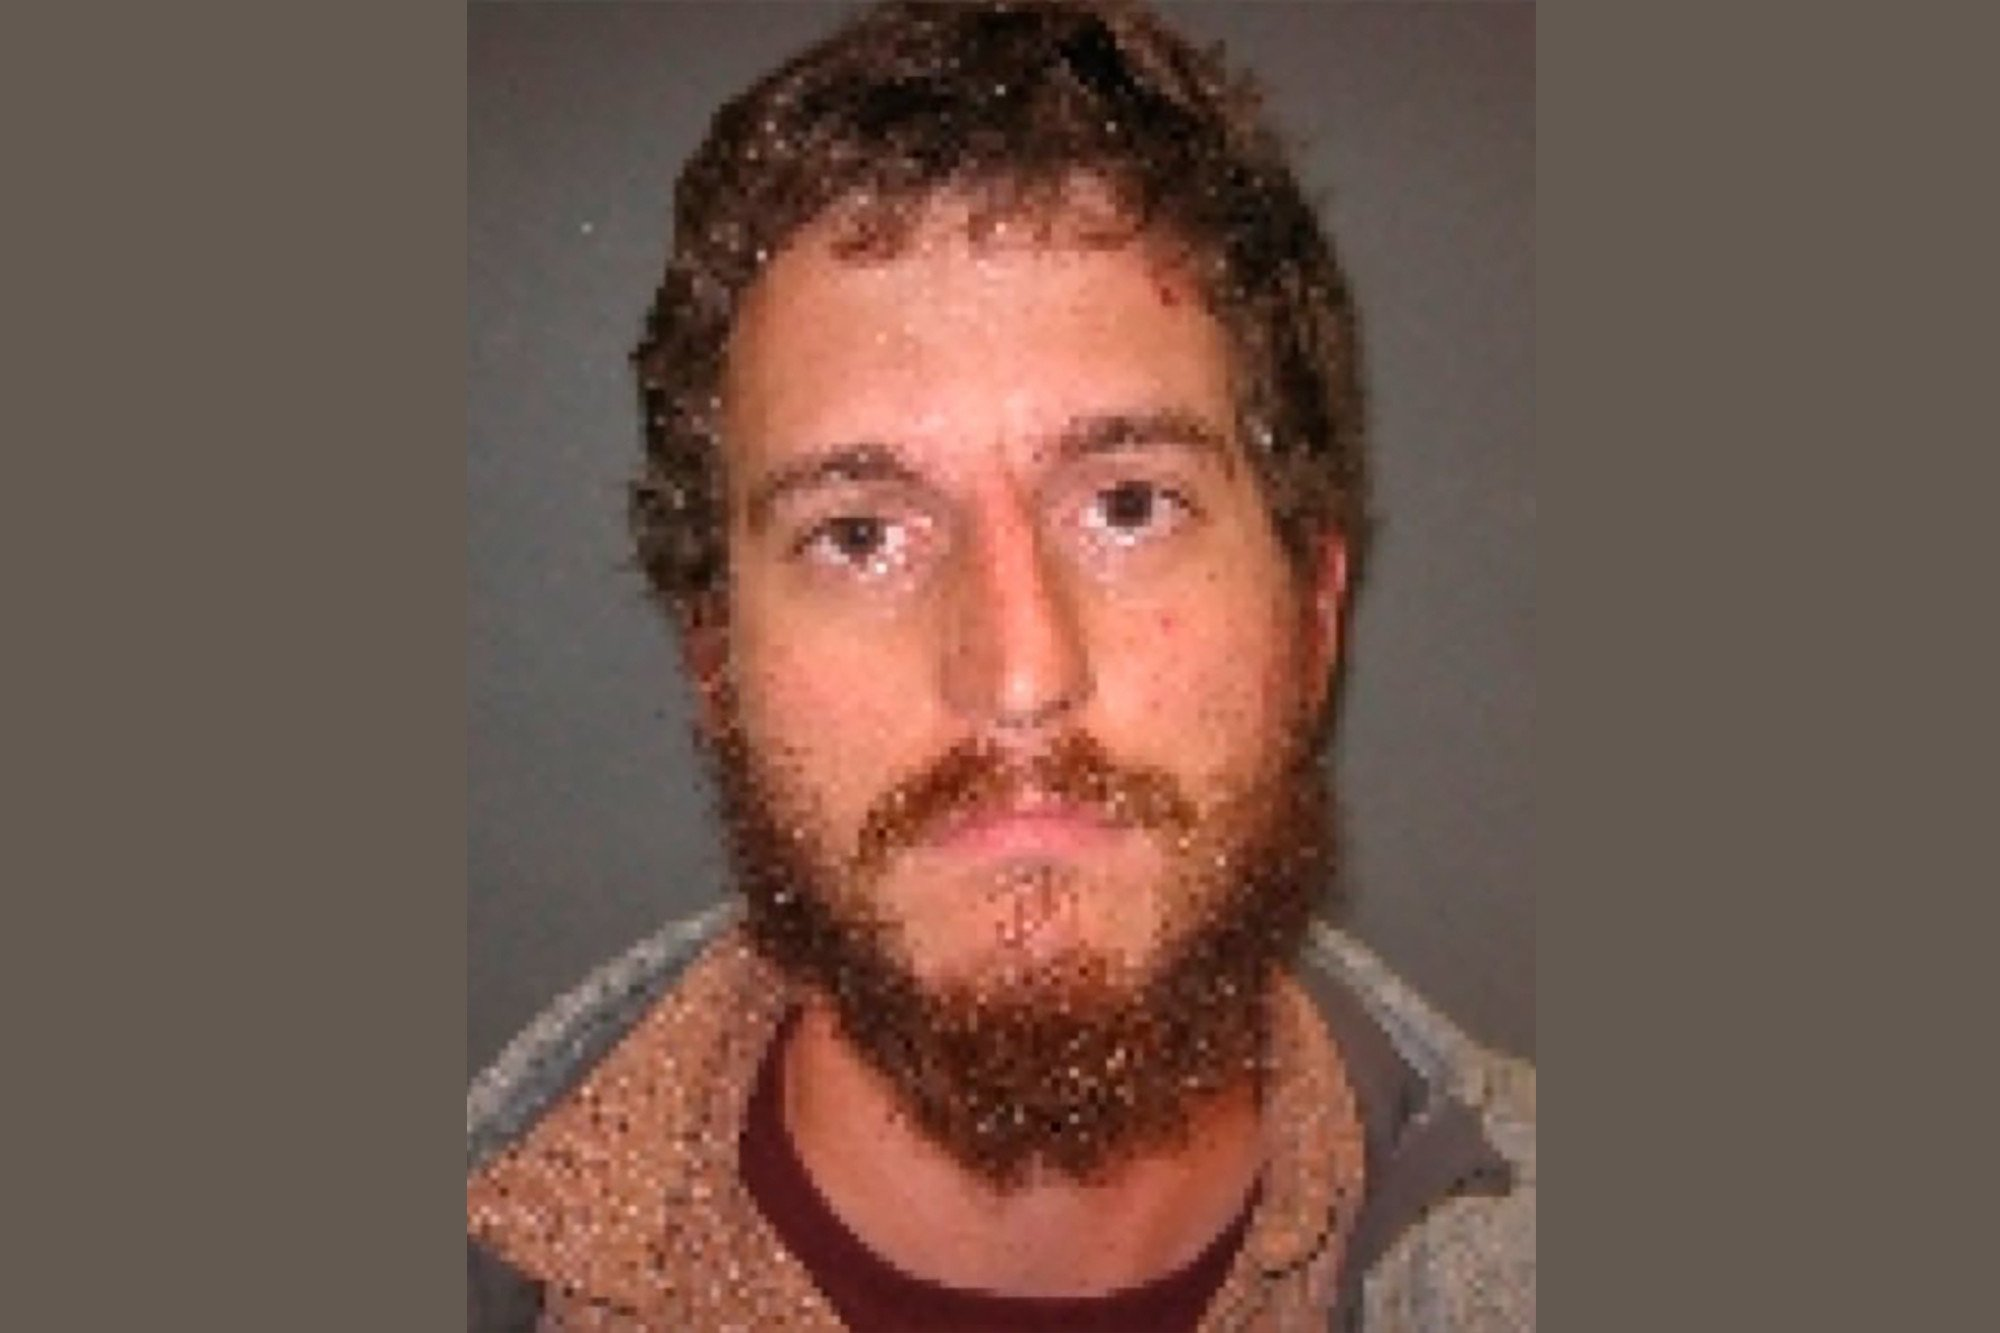 White supremacist accused of terrorism in Amtrak attack